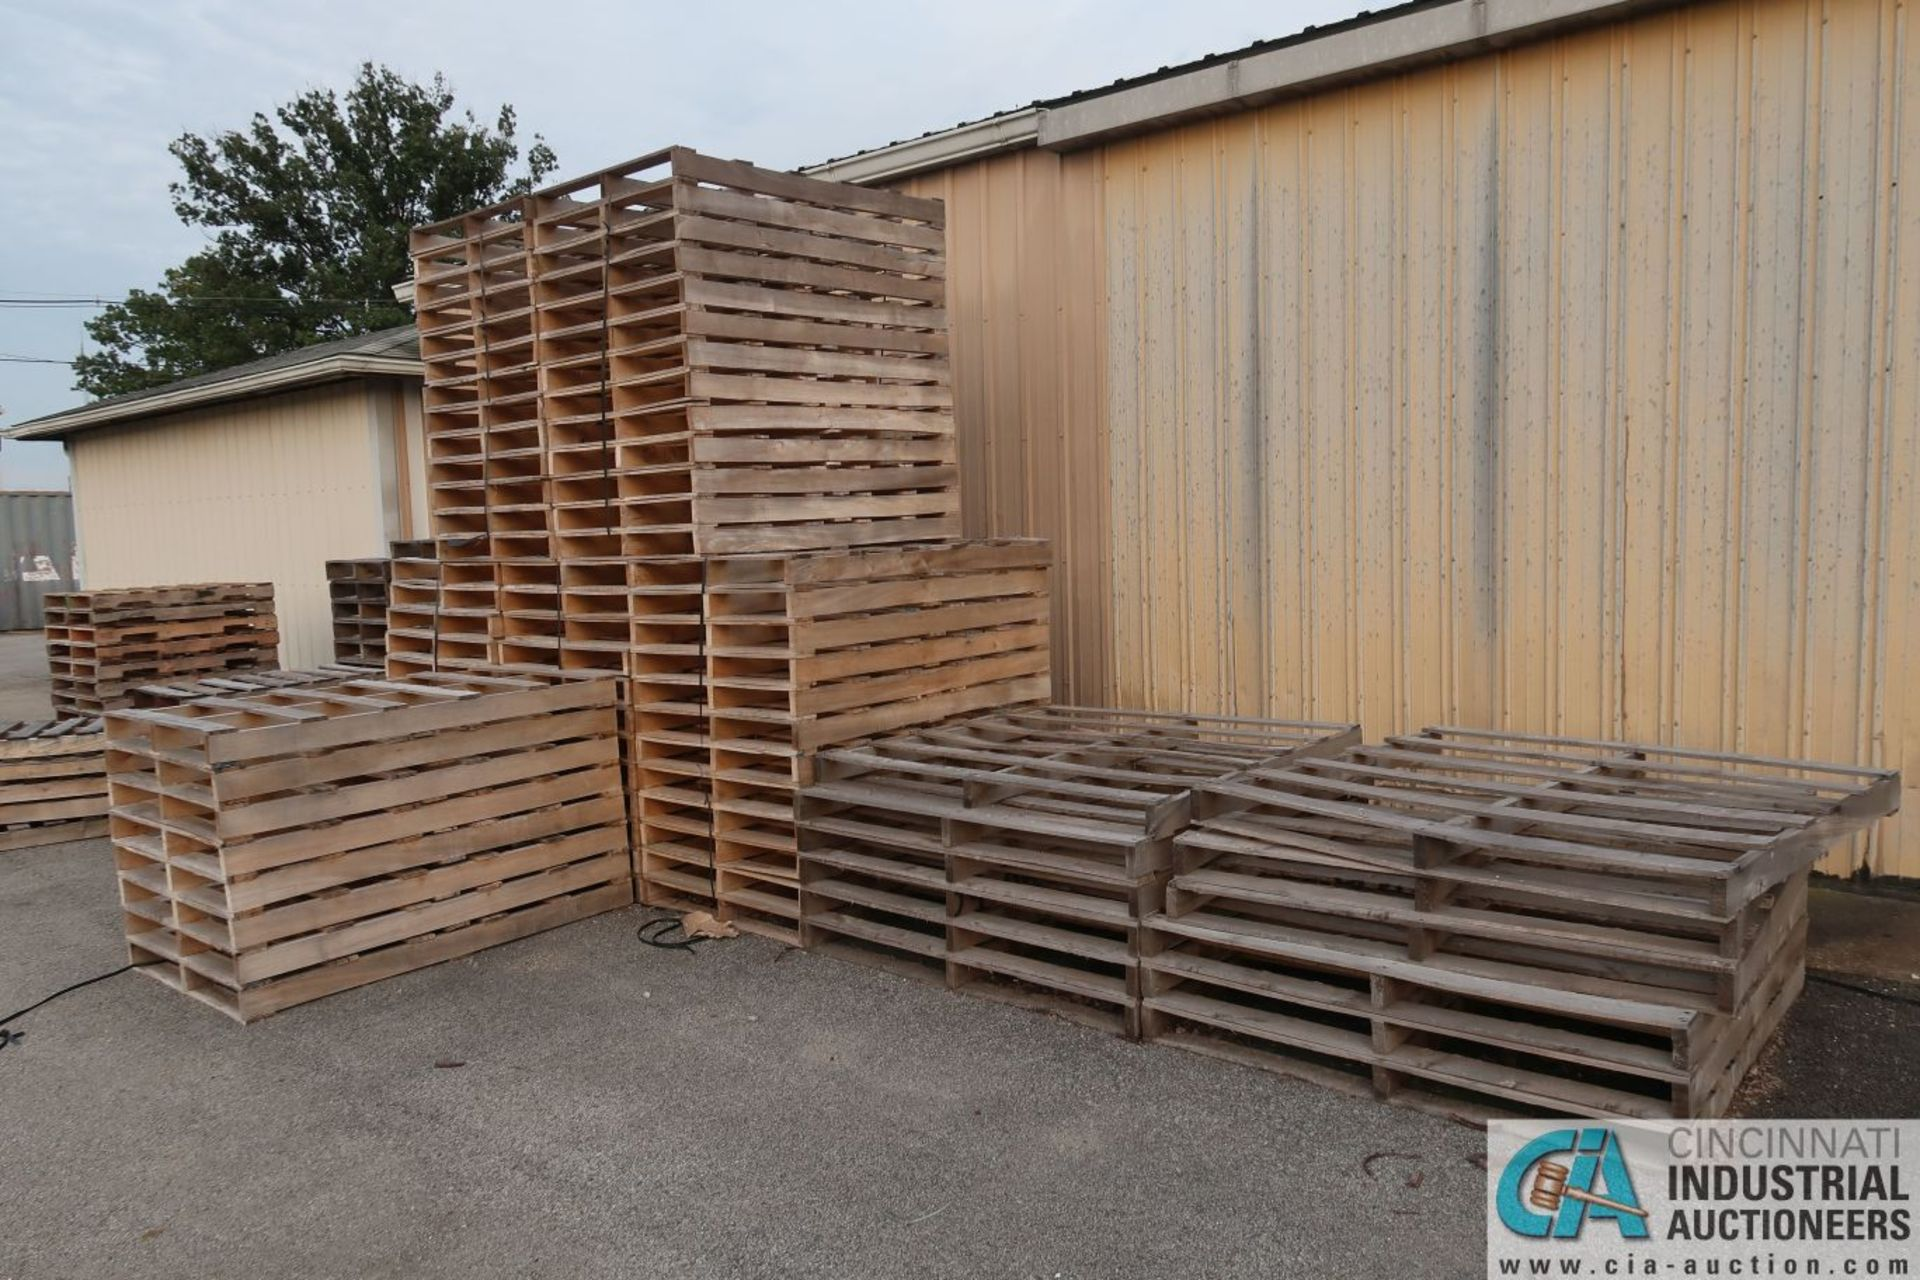 APPROX. VARIOUS SIZE NEW WOOD PALLETS